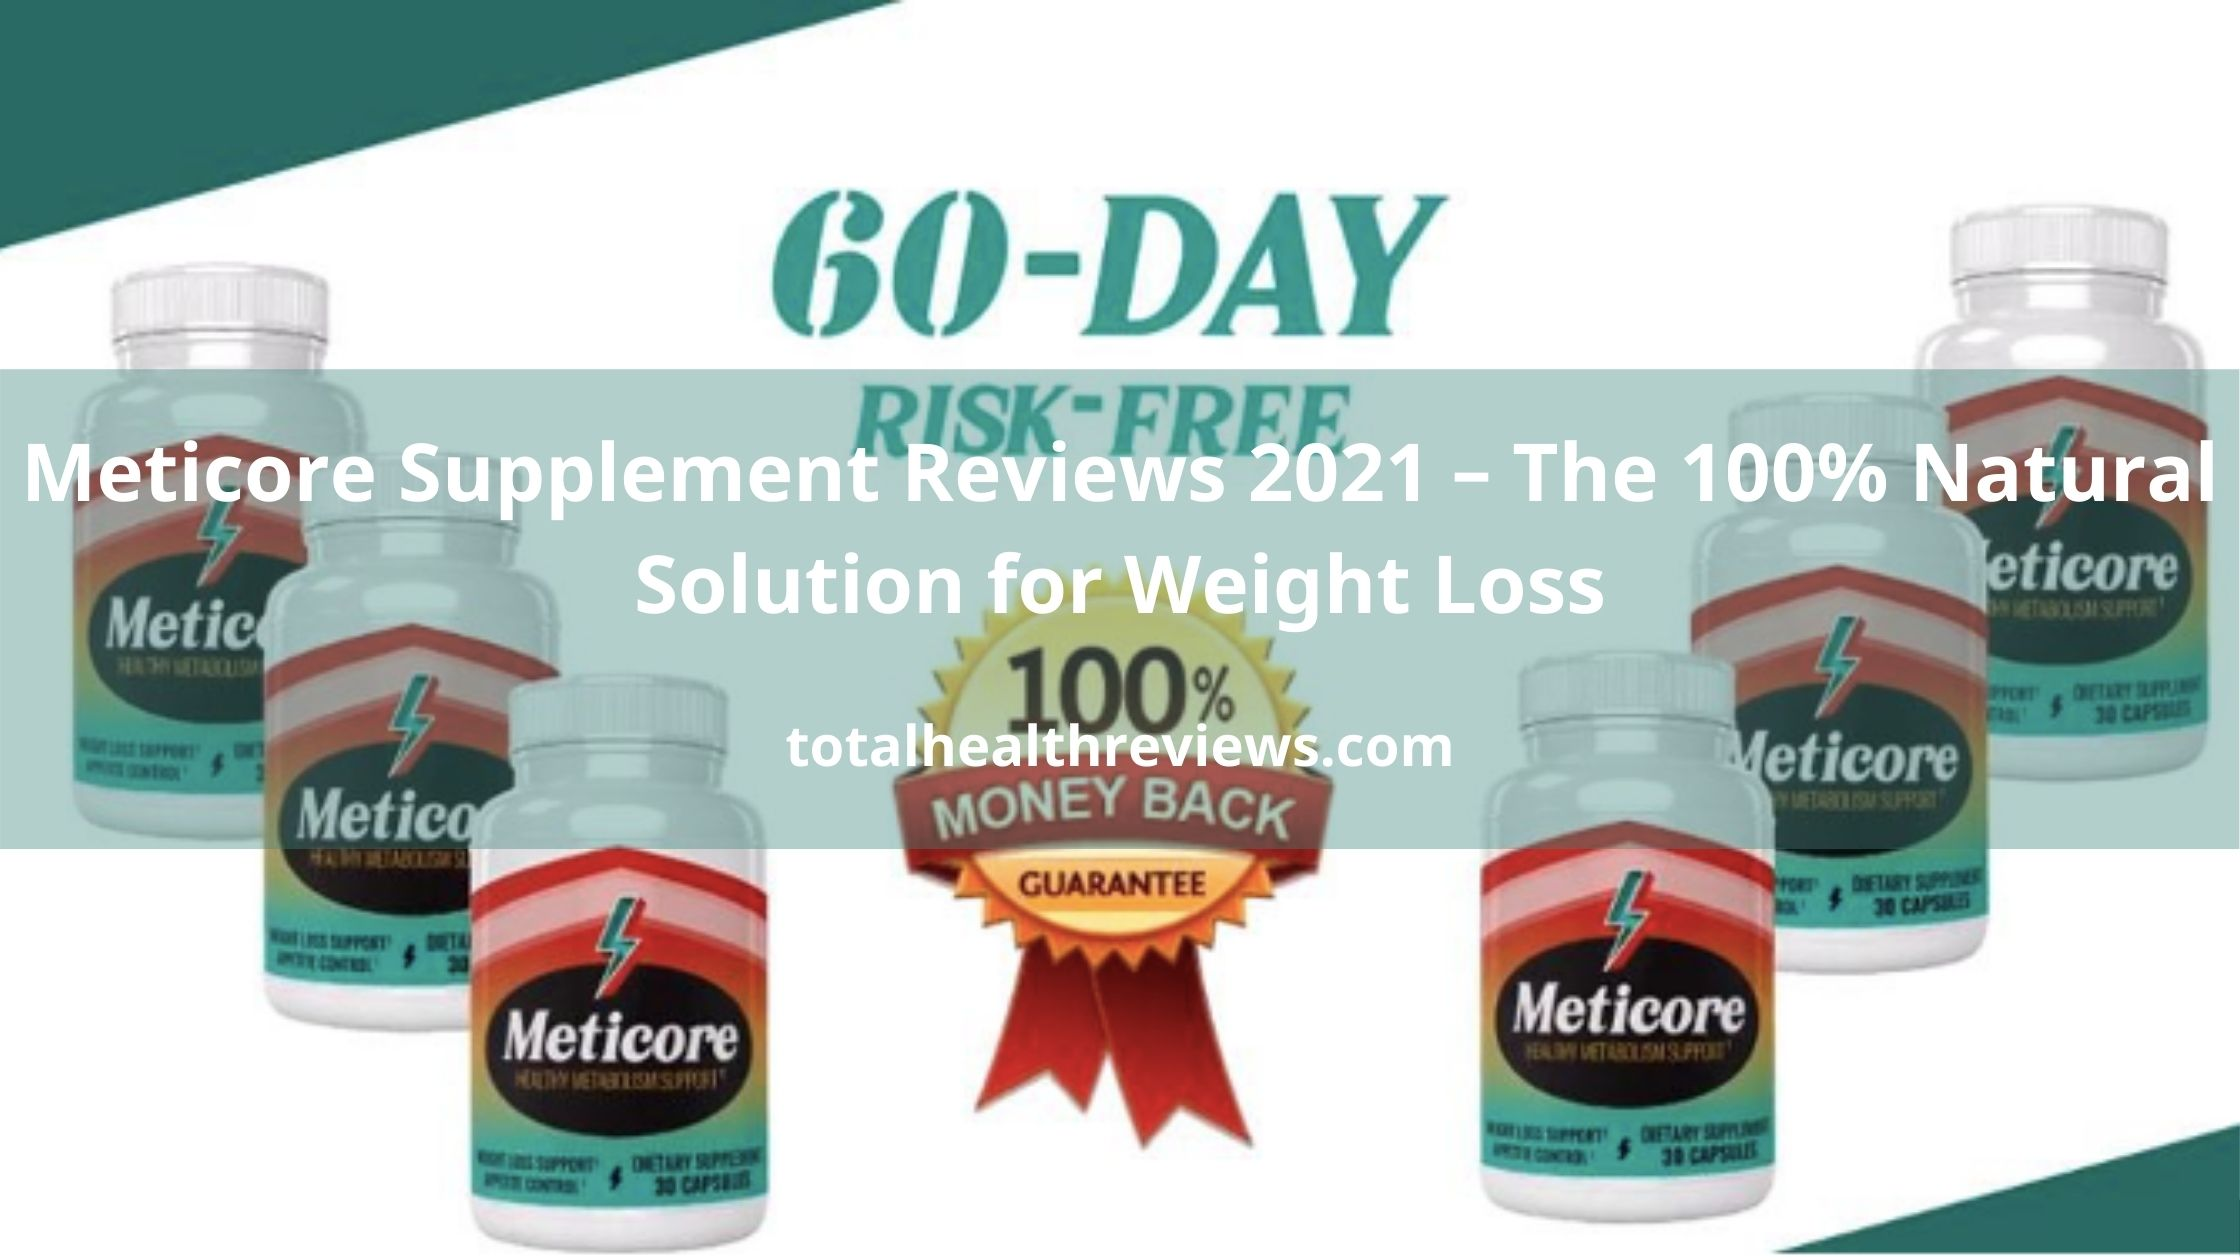 Meticore Supplement Reviews 2021 – The 100% Natural Solution for Weight Loss